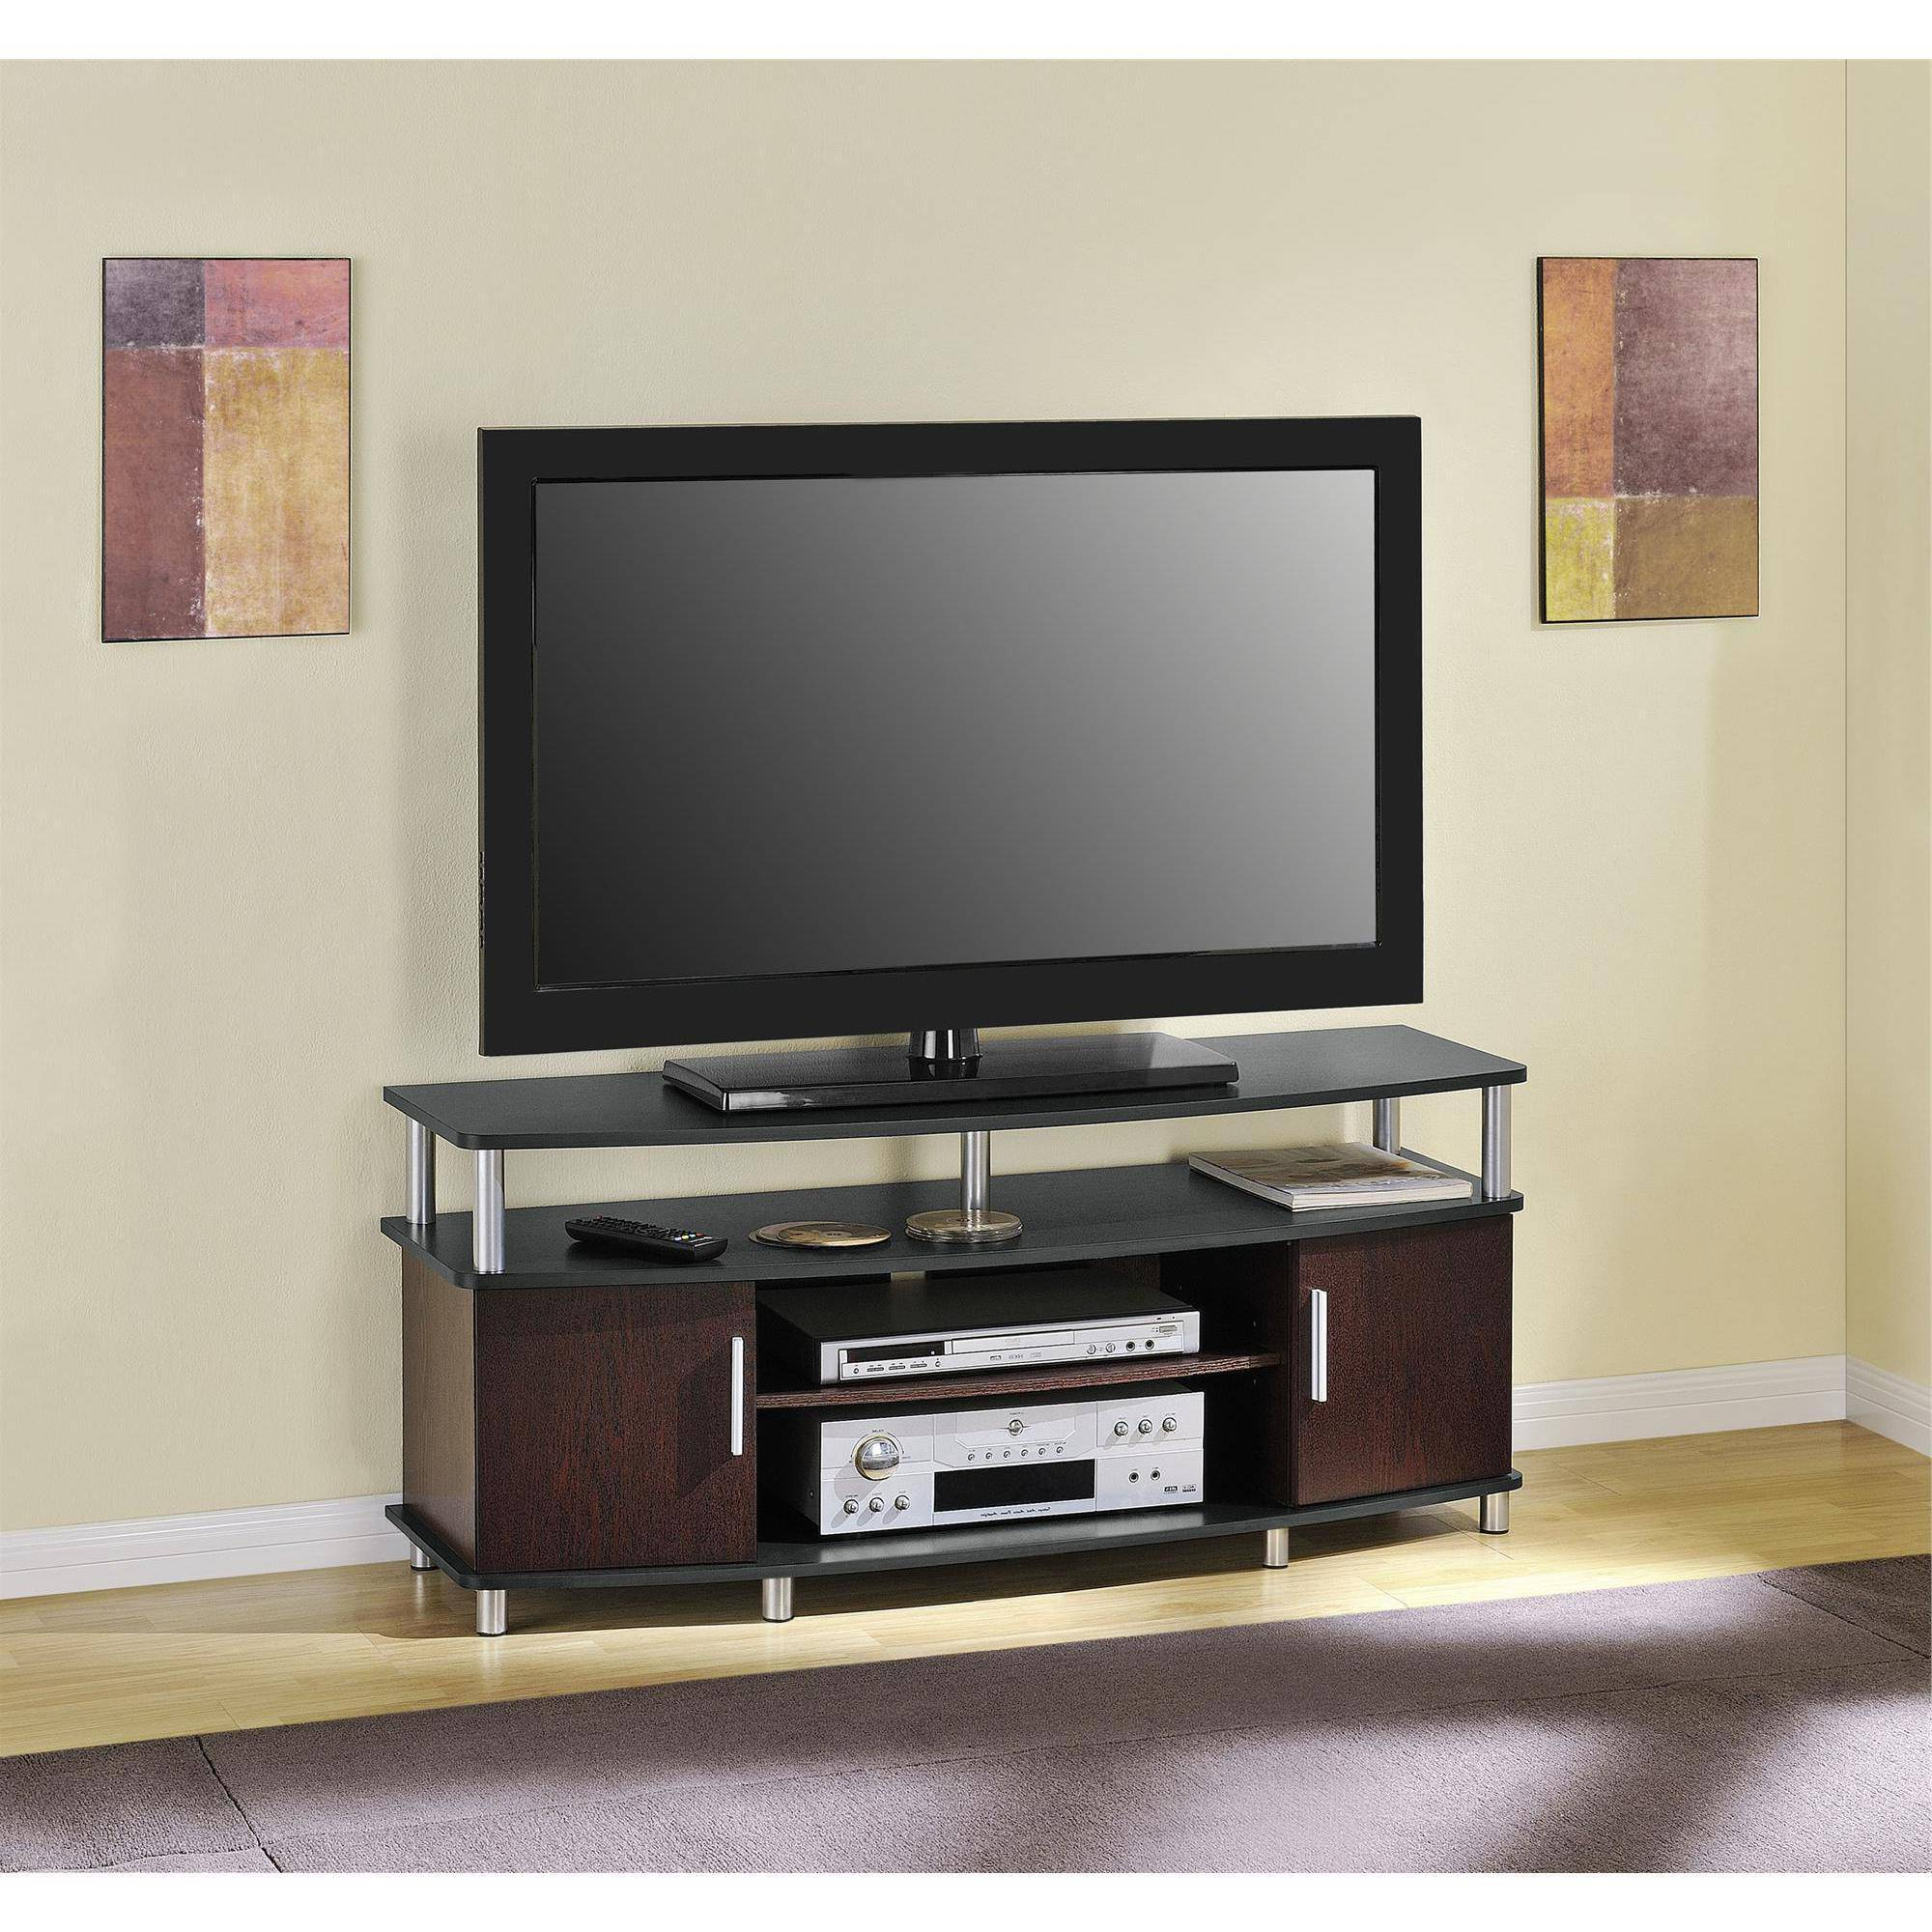 "Modern Tv Stands For 60 Inch Tvs Intended For 2018 Carson Tv Stand, For Tvs Up To 50"", Multiple Finishes – Walmart (View 10 of 20)"